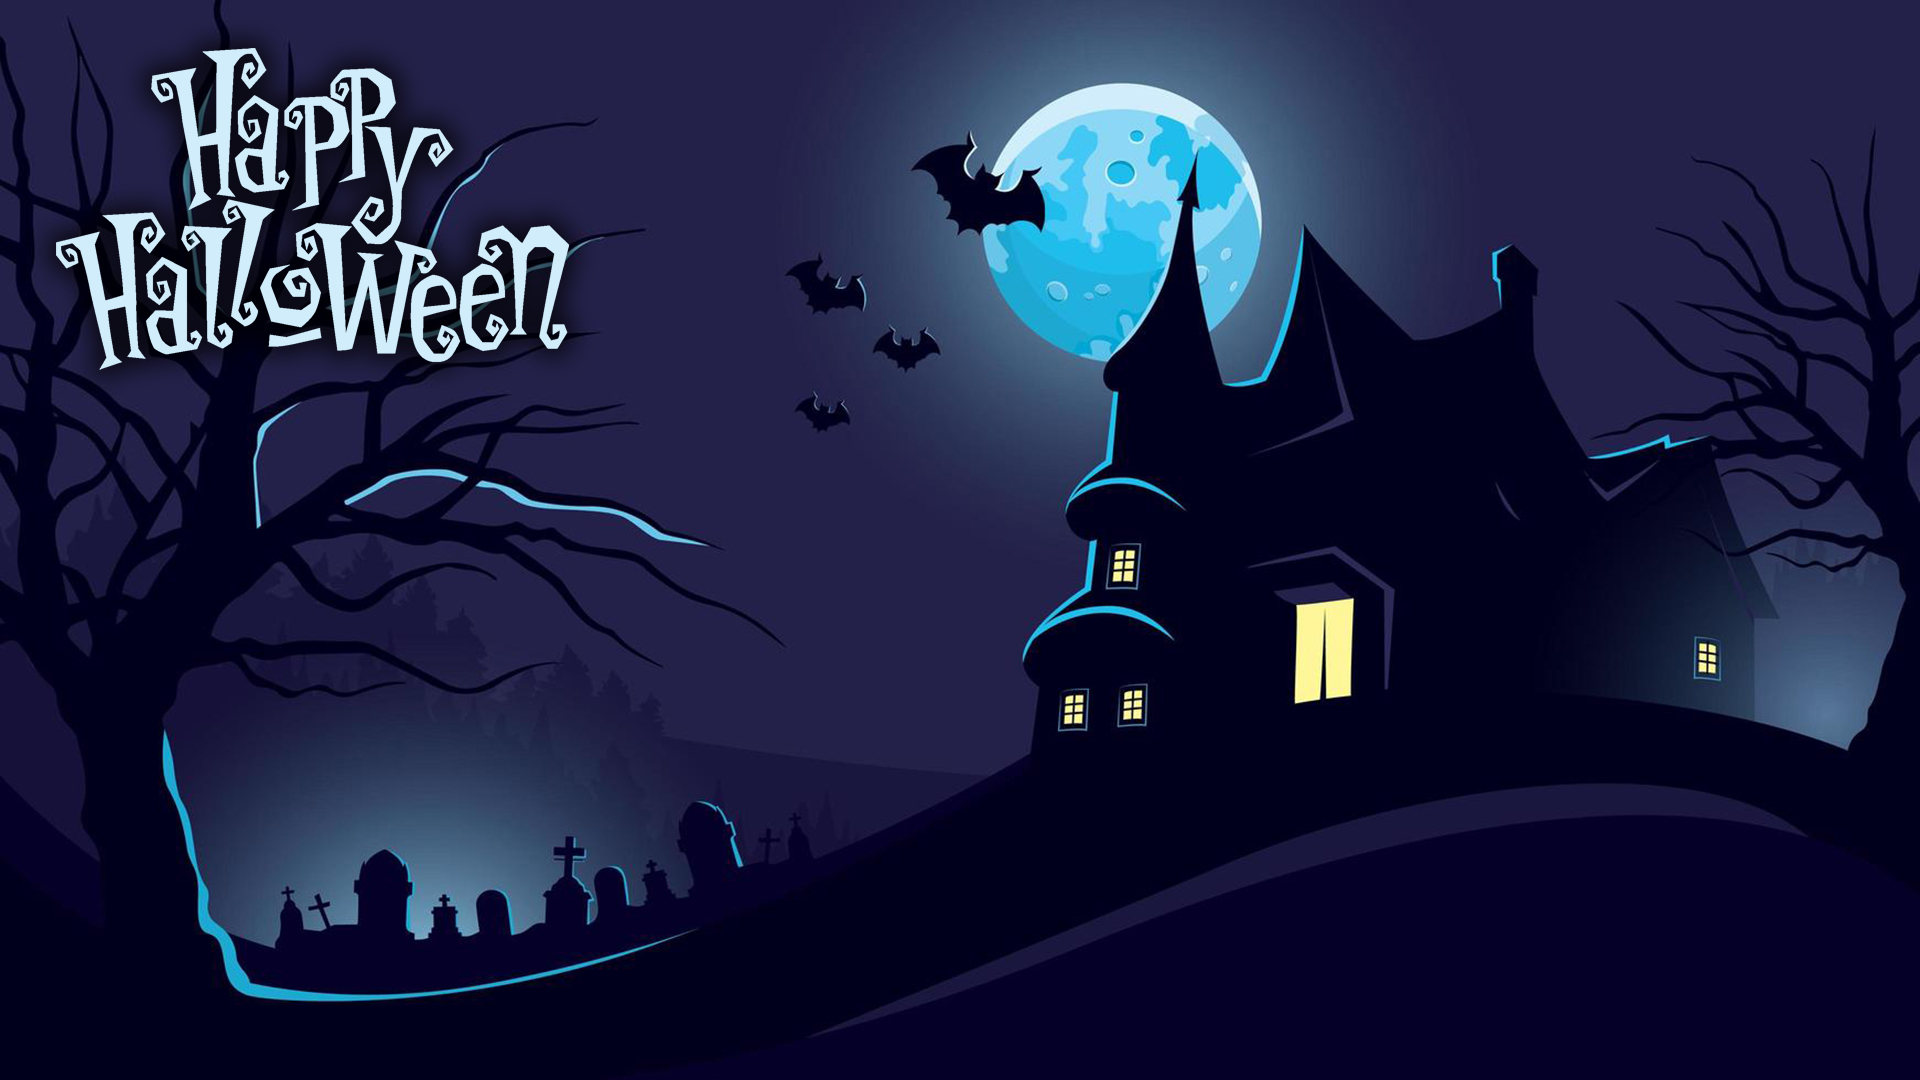 Halloween spooky house at night. Virtual background to use on Zoom, Microsoft Teams, Skype, Google Meet, WebEx or any other compatible app.